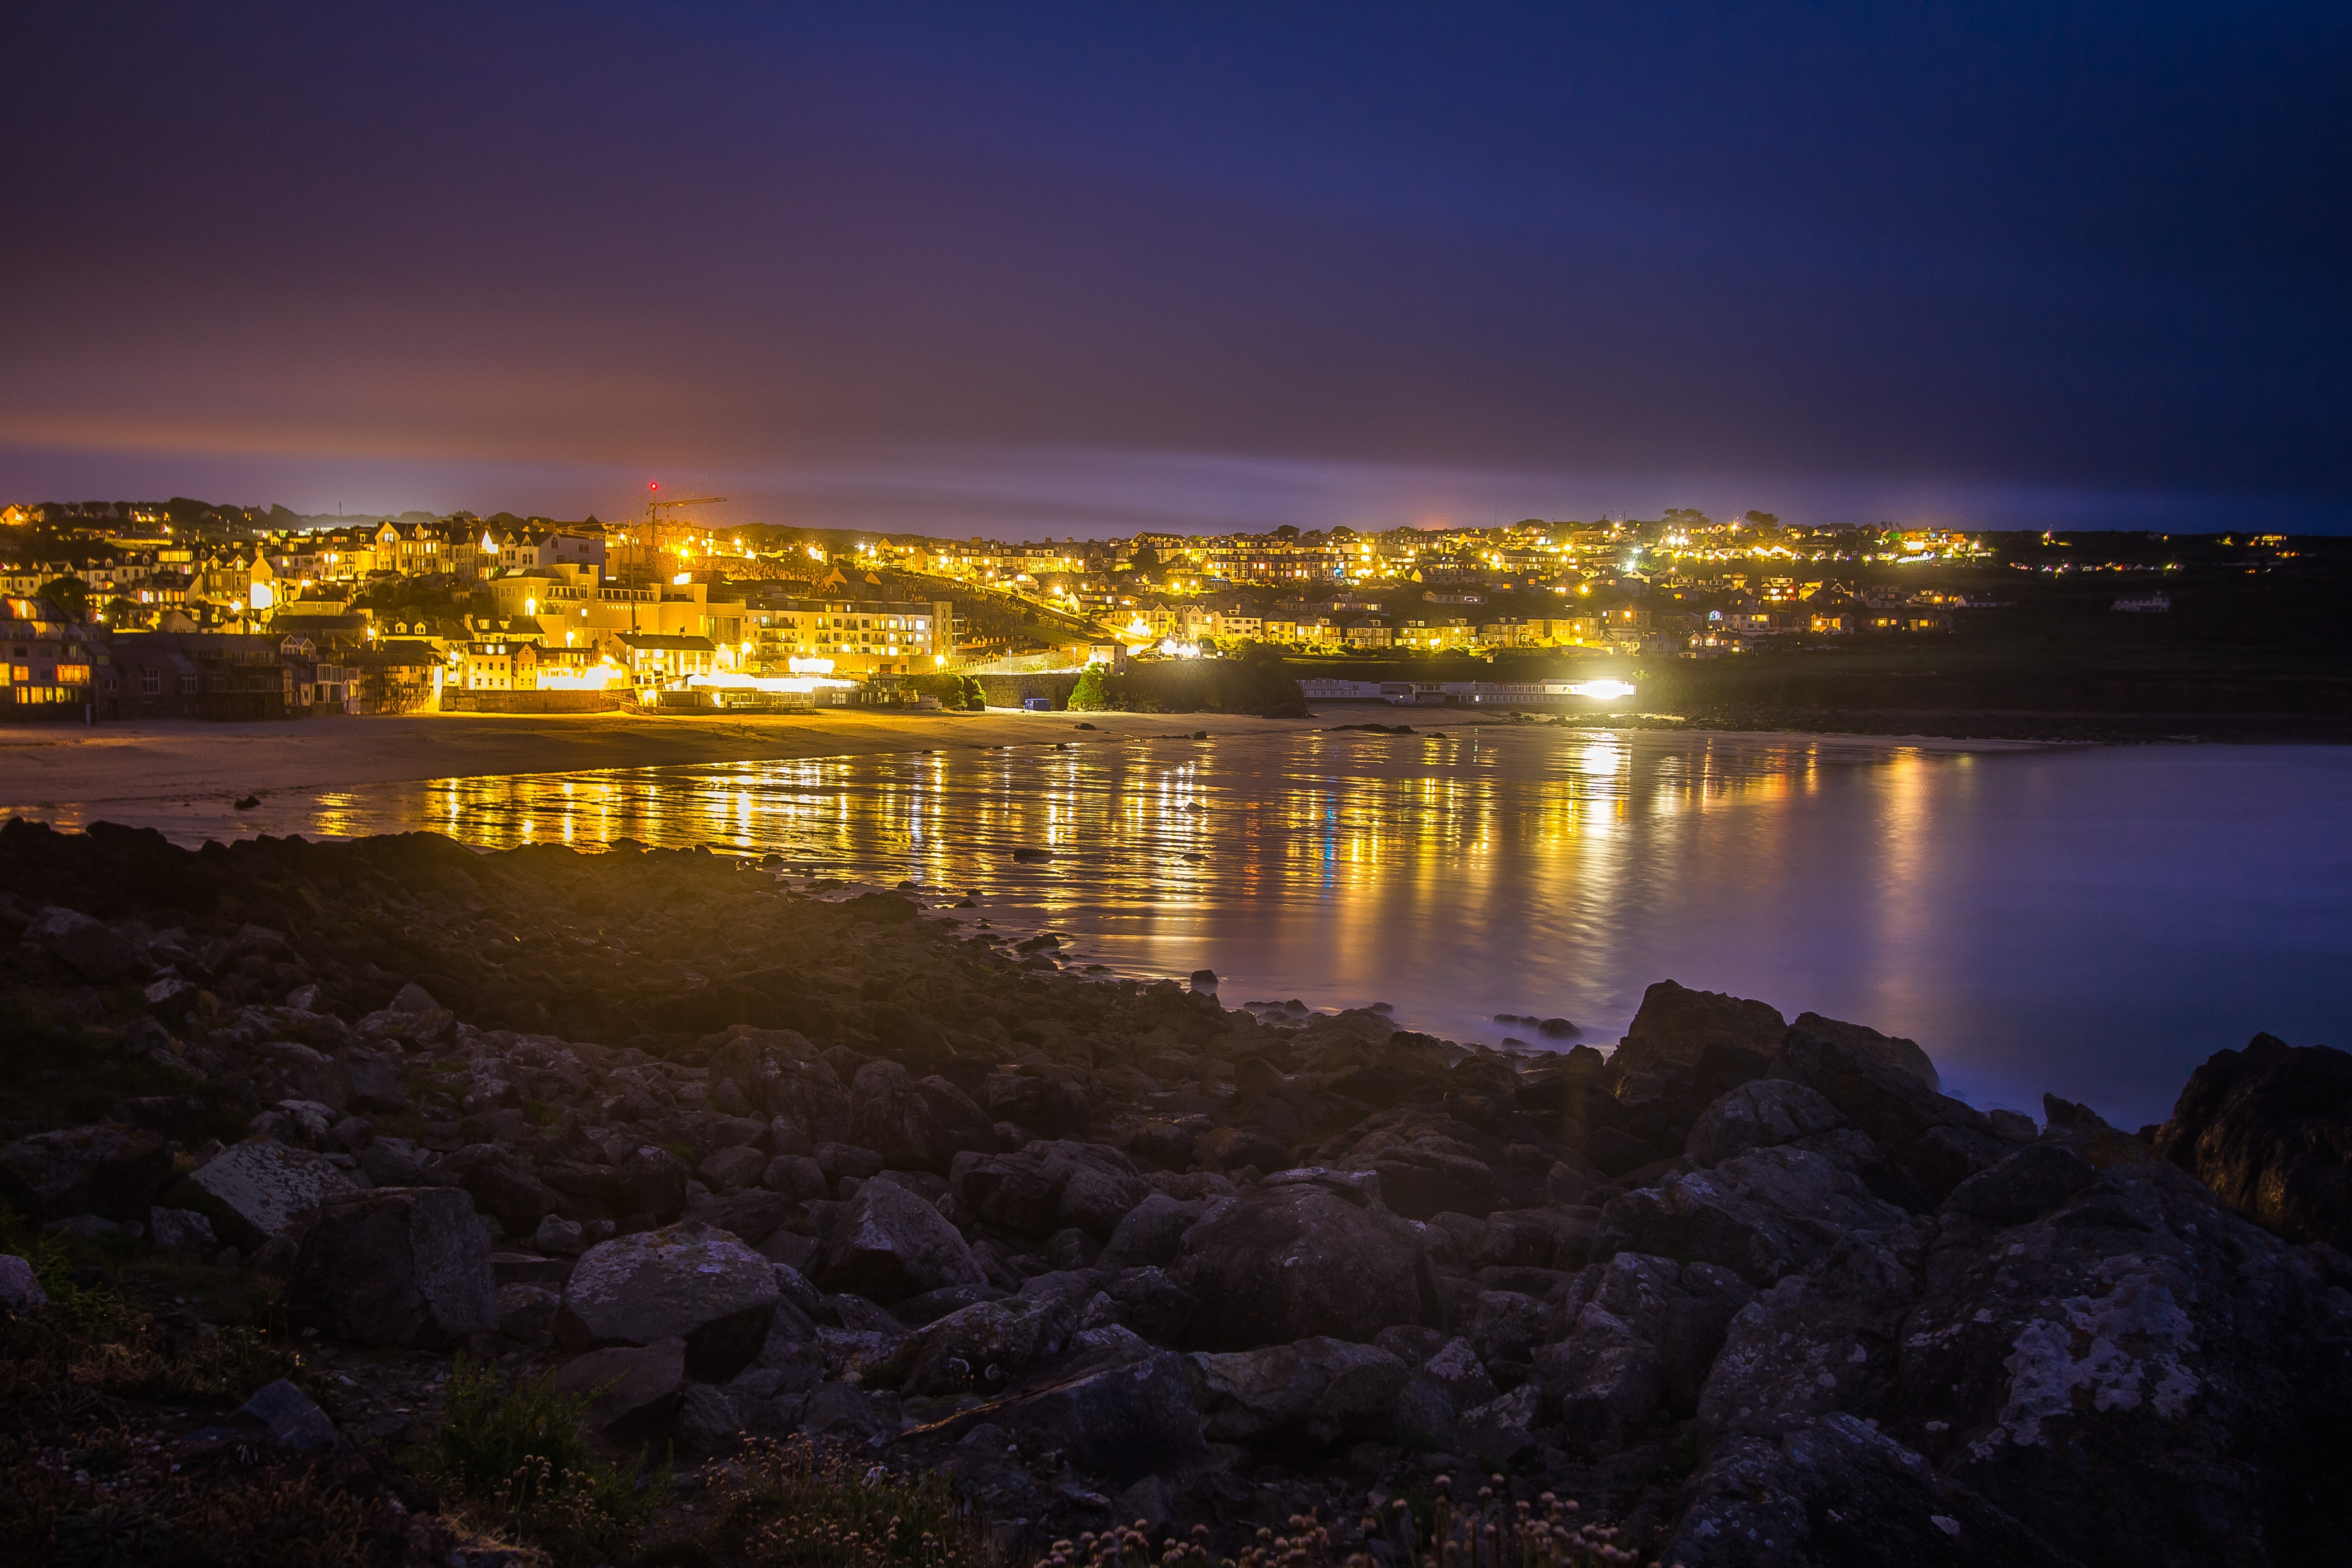 Lighted City in Distance Near Body of Water, Bay, Night, Travel, Town, HQ Photo